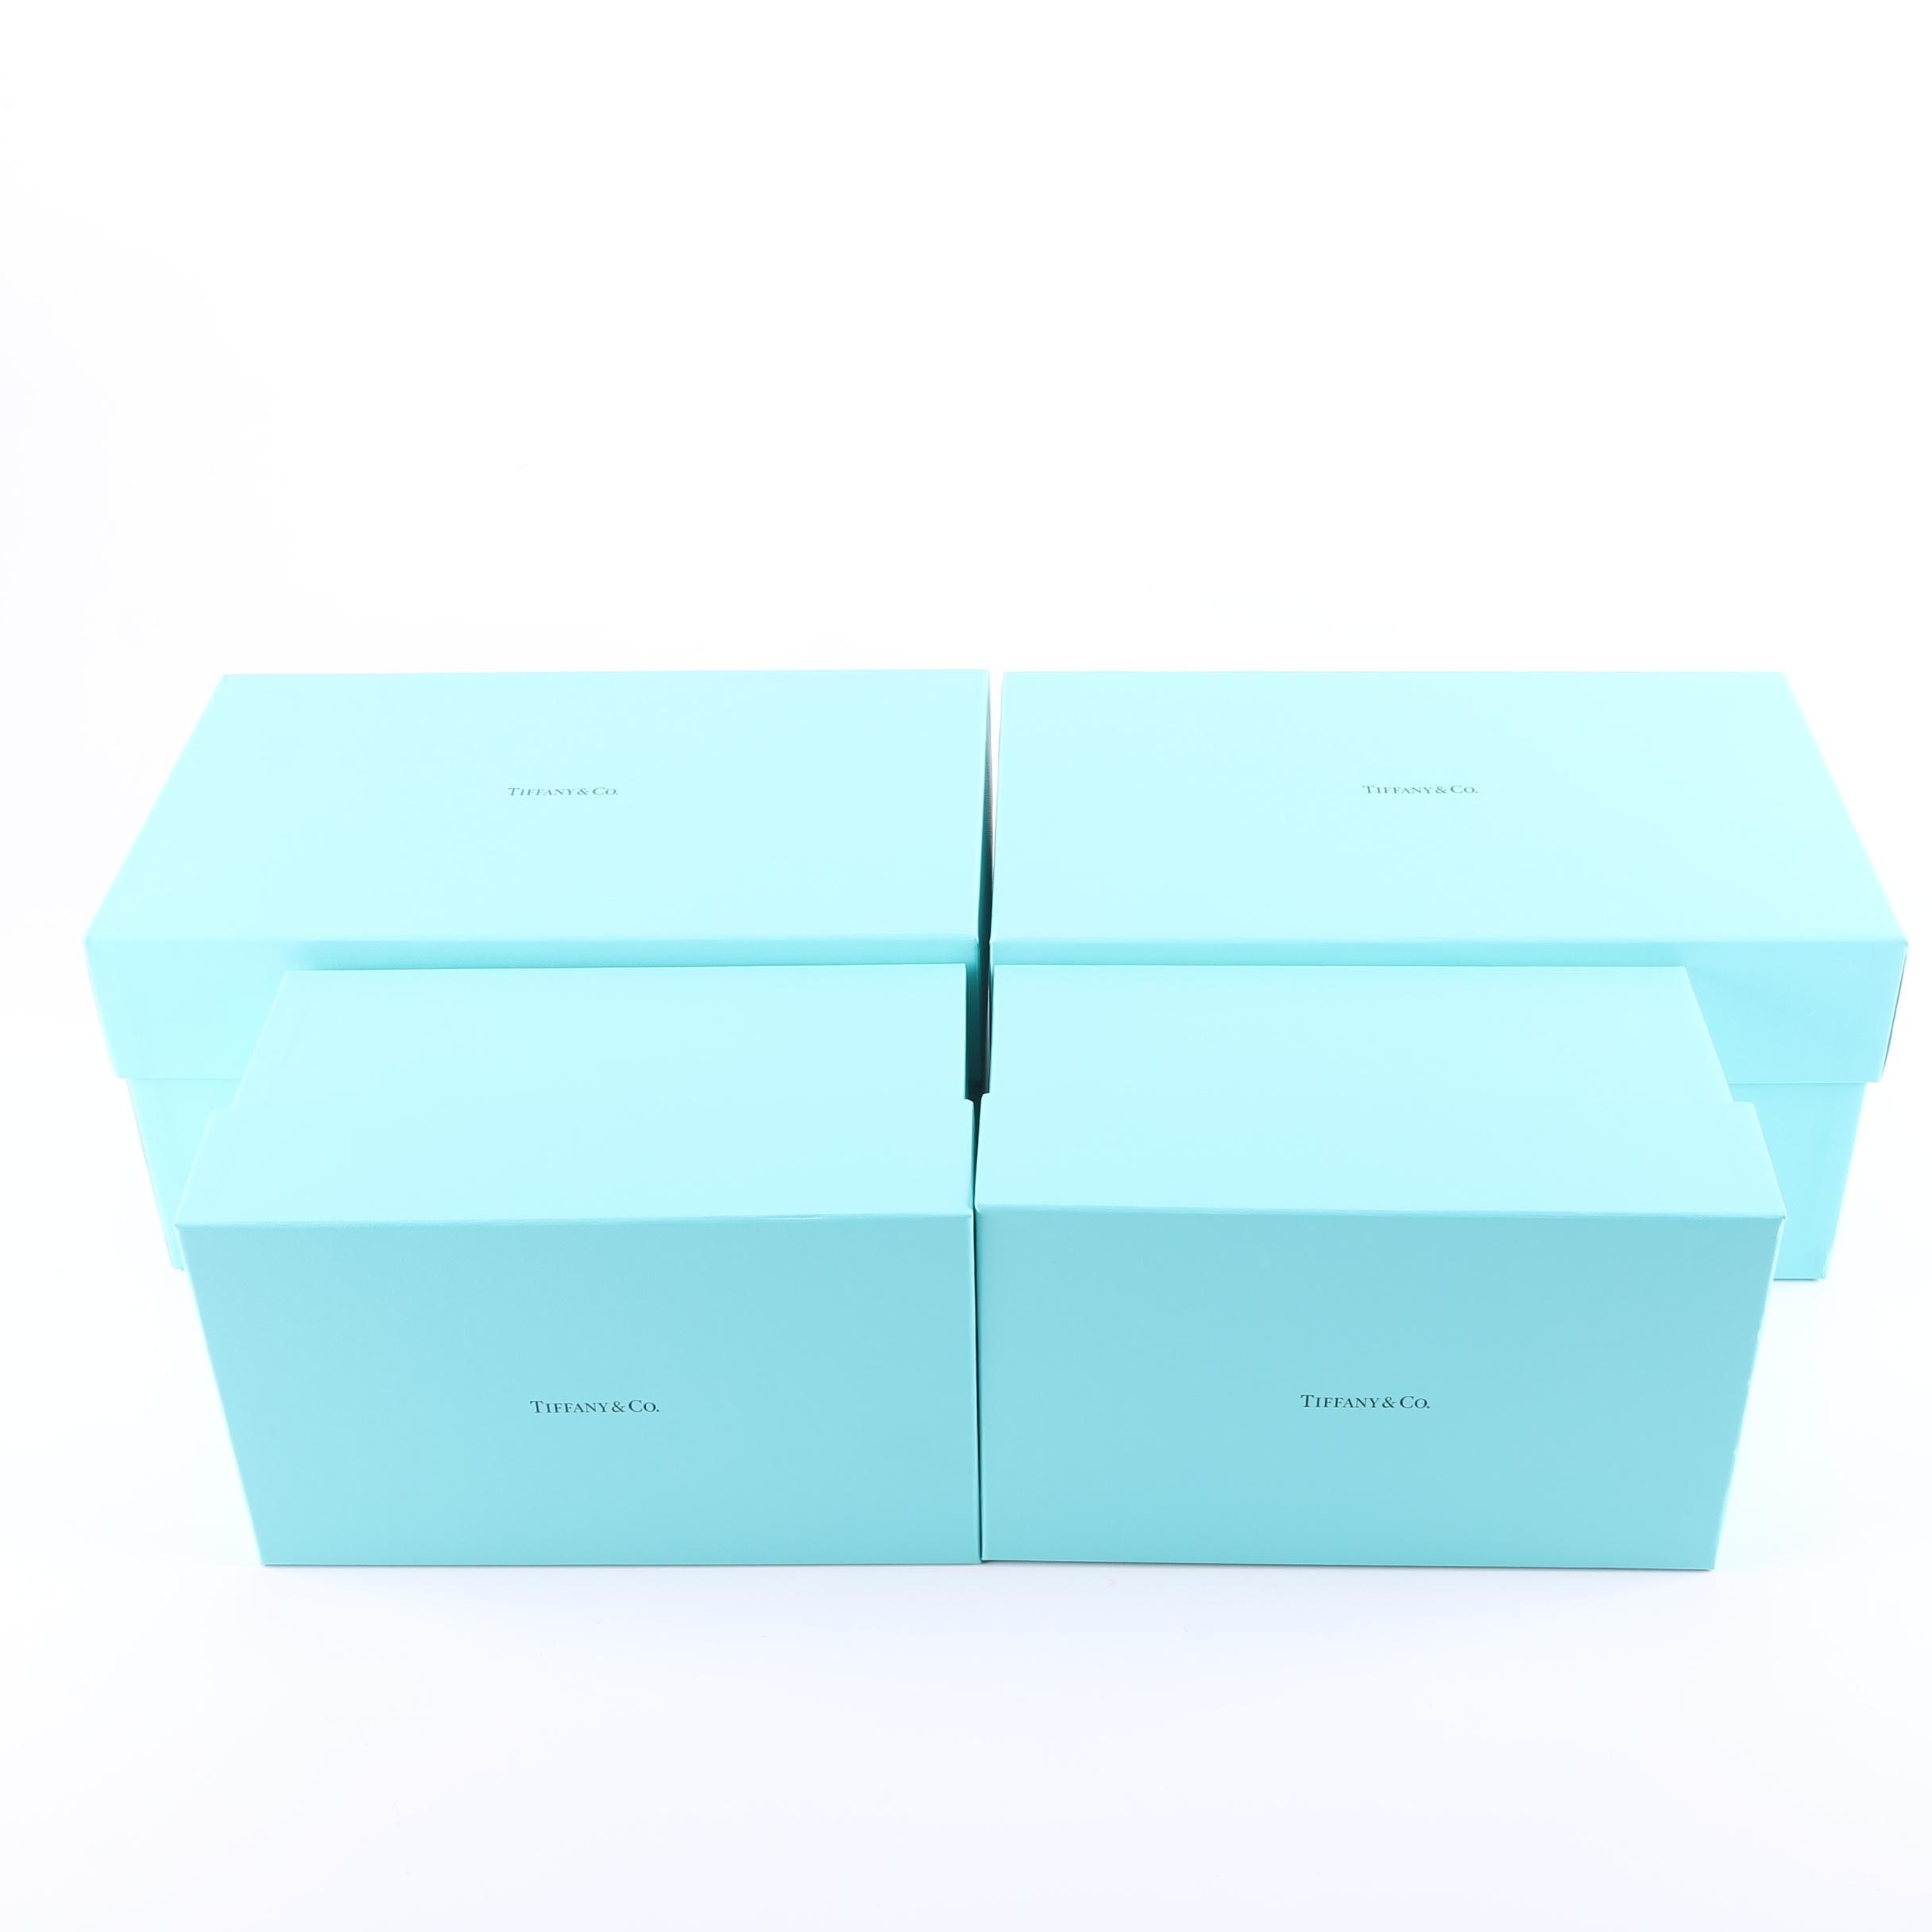 Lot of 4 Tiffany & Co. Blue Boxes